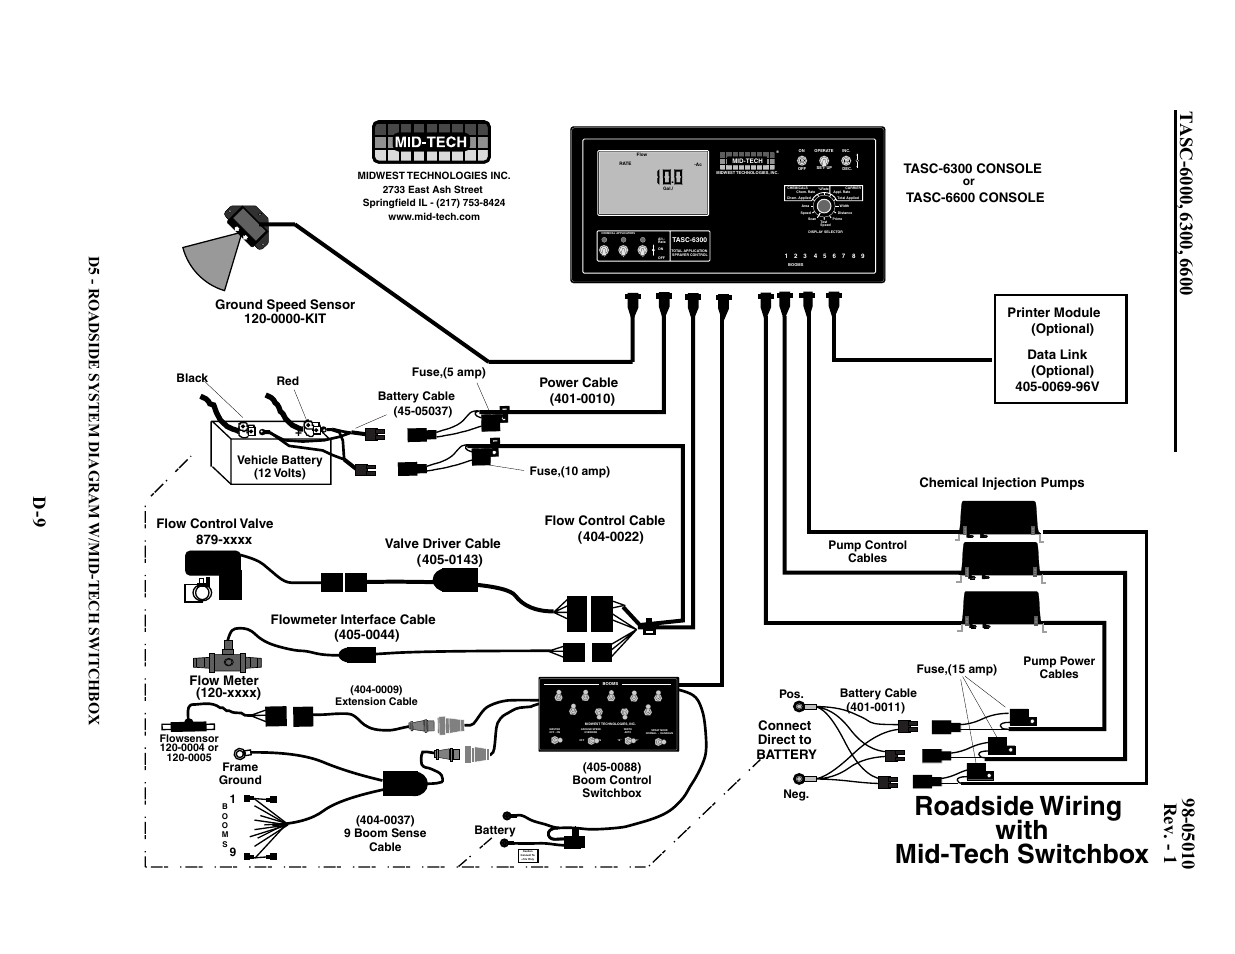 hight resolution of roadside wiring with mid tech switchbox d5 roadside system diagram w mid